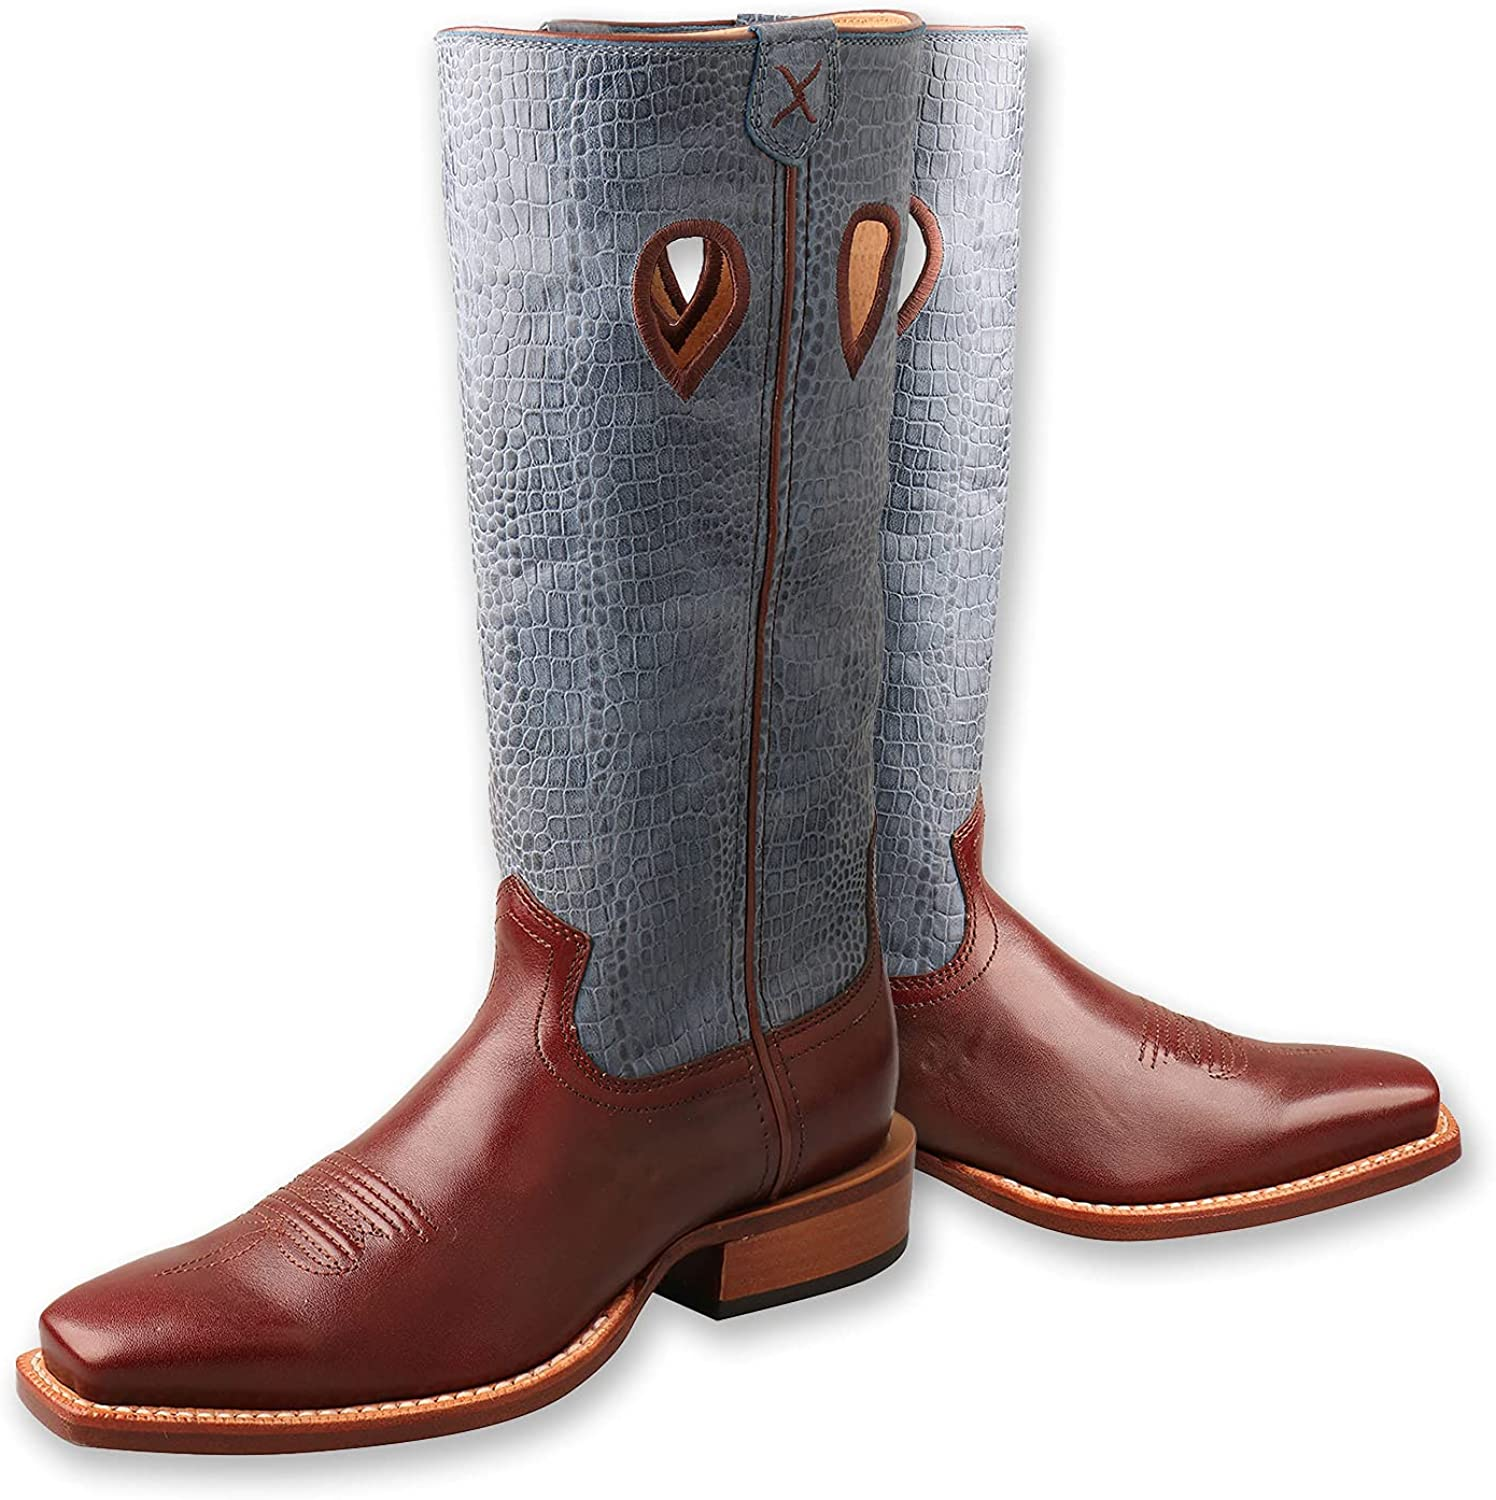 Twisted X Women's Ruff Stock Boot - Mid-calf Full-grain Leather Western Cowboy Boots with Floral Embroidery in Oiled Bomber